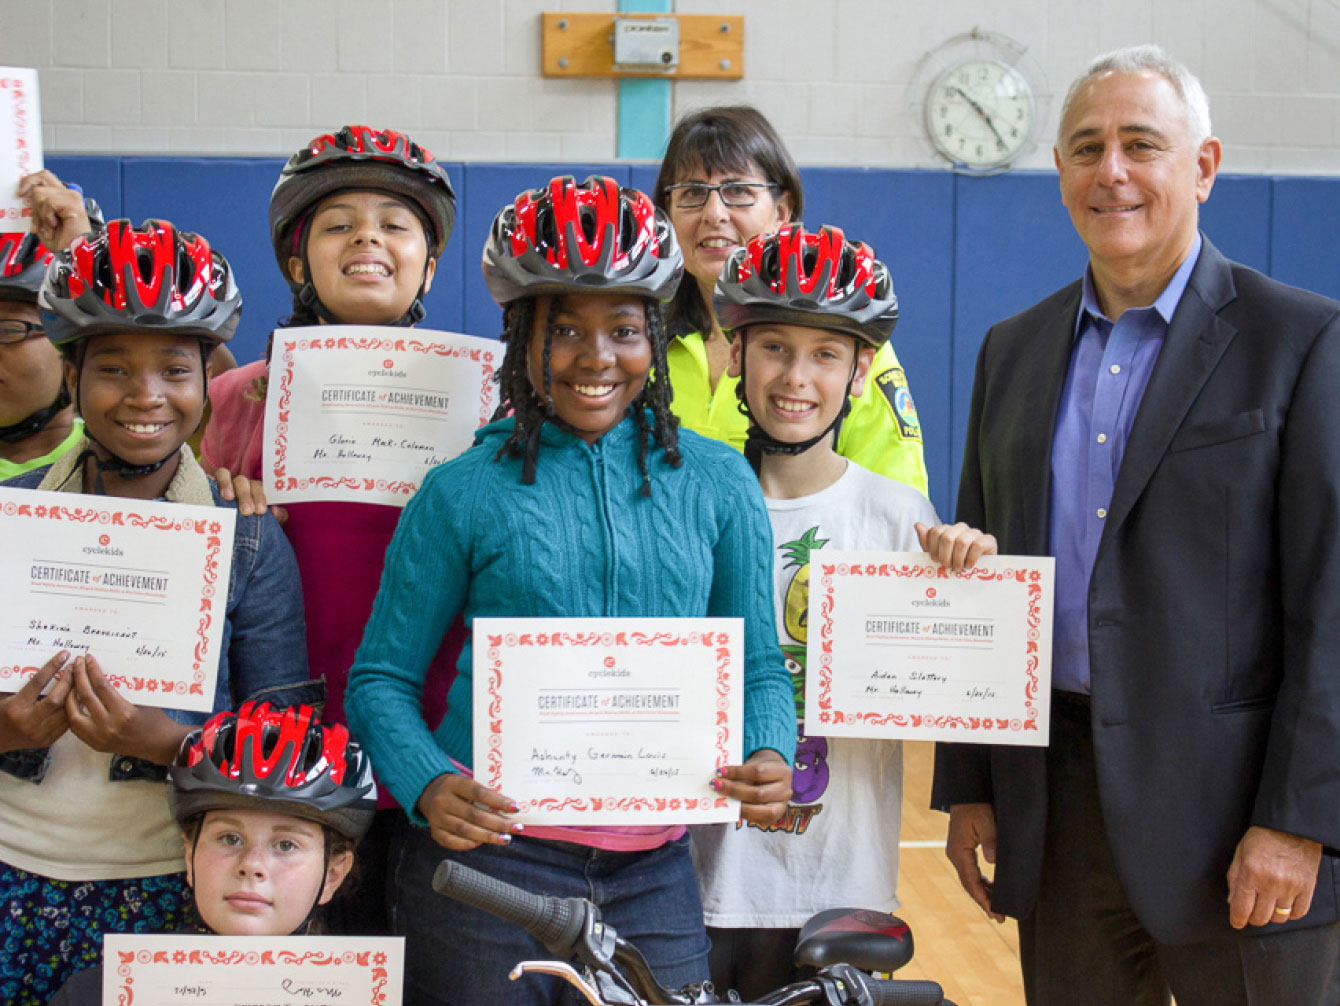 Graduates of the Somerville CYCLE Kids program  Every student leaves our program with a diploma in hand, a smile on their face, and skills to last them a lifetime!